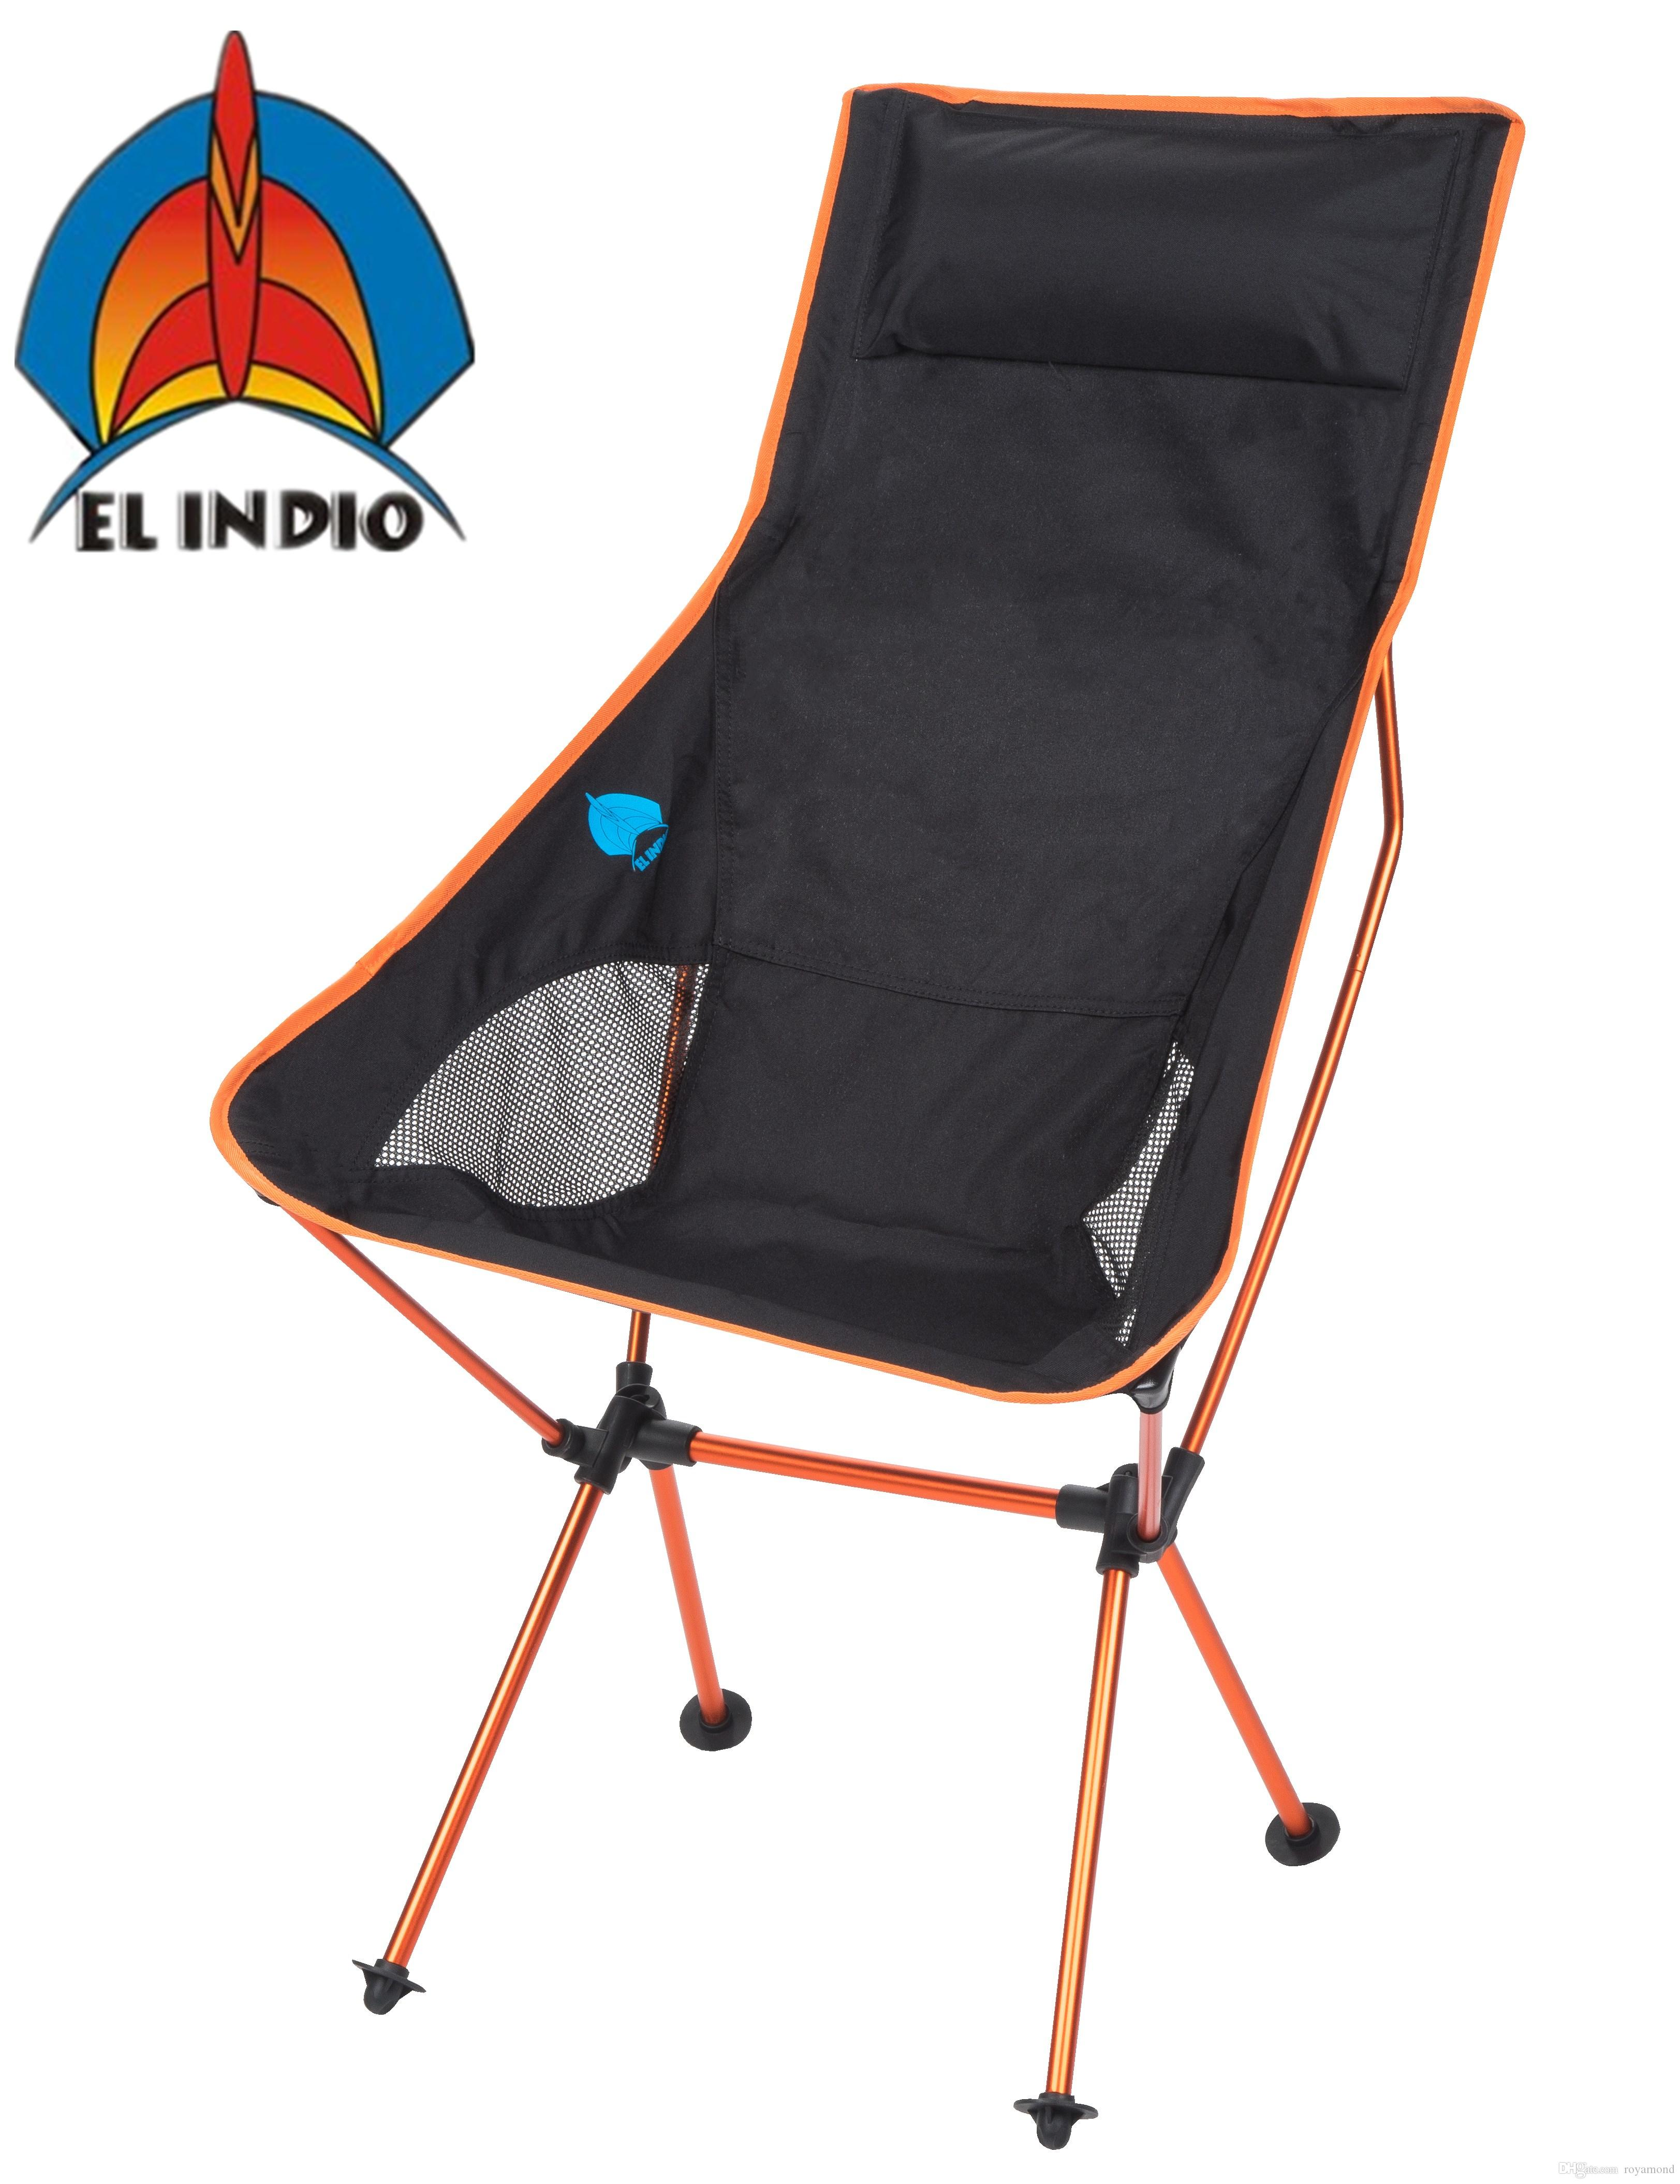 portable picnic chair covers for weddings ebay el indio fishing folding camping chairs ultra lightweight outdoor hiking lounger bbq garden table patio from